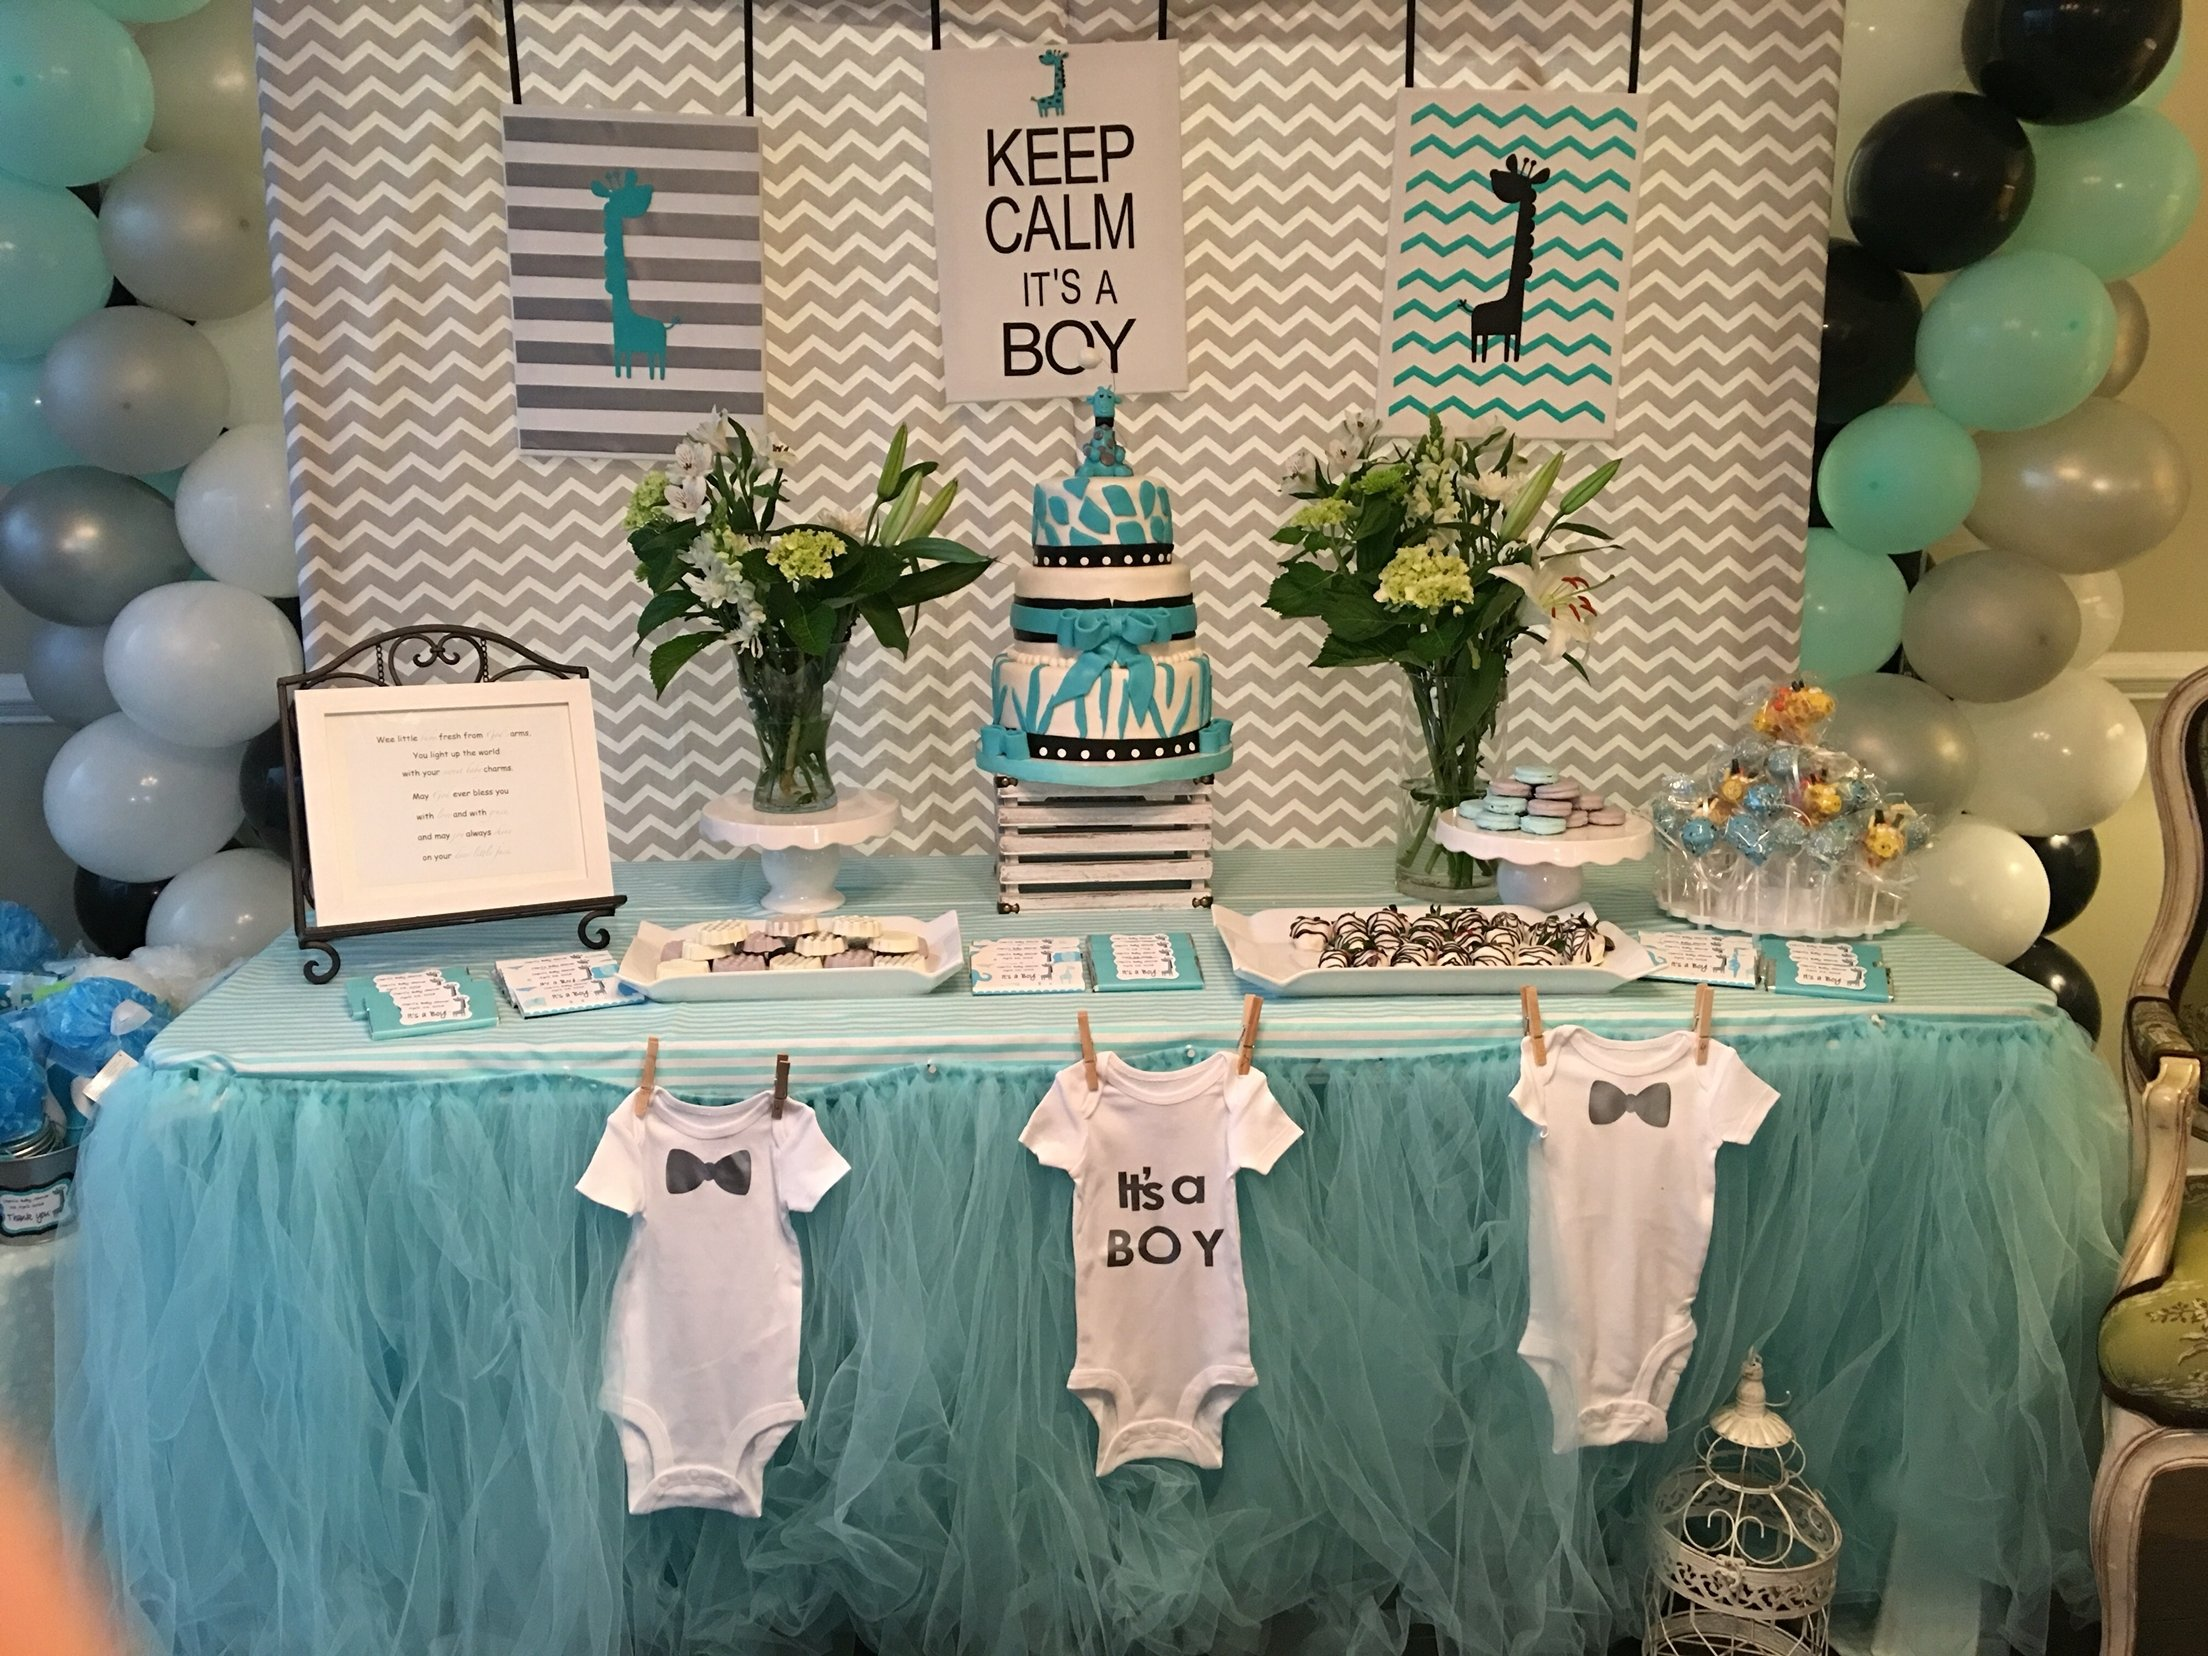 10 Great Ideas For Baby Boy Shower creative ideas baby boy shower decorations homely uptown giraffe 2020